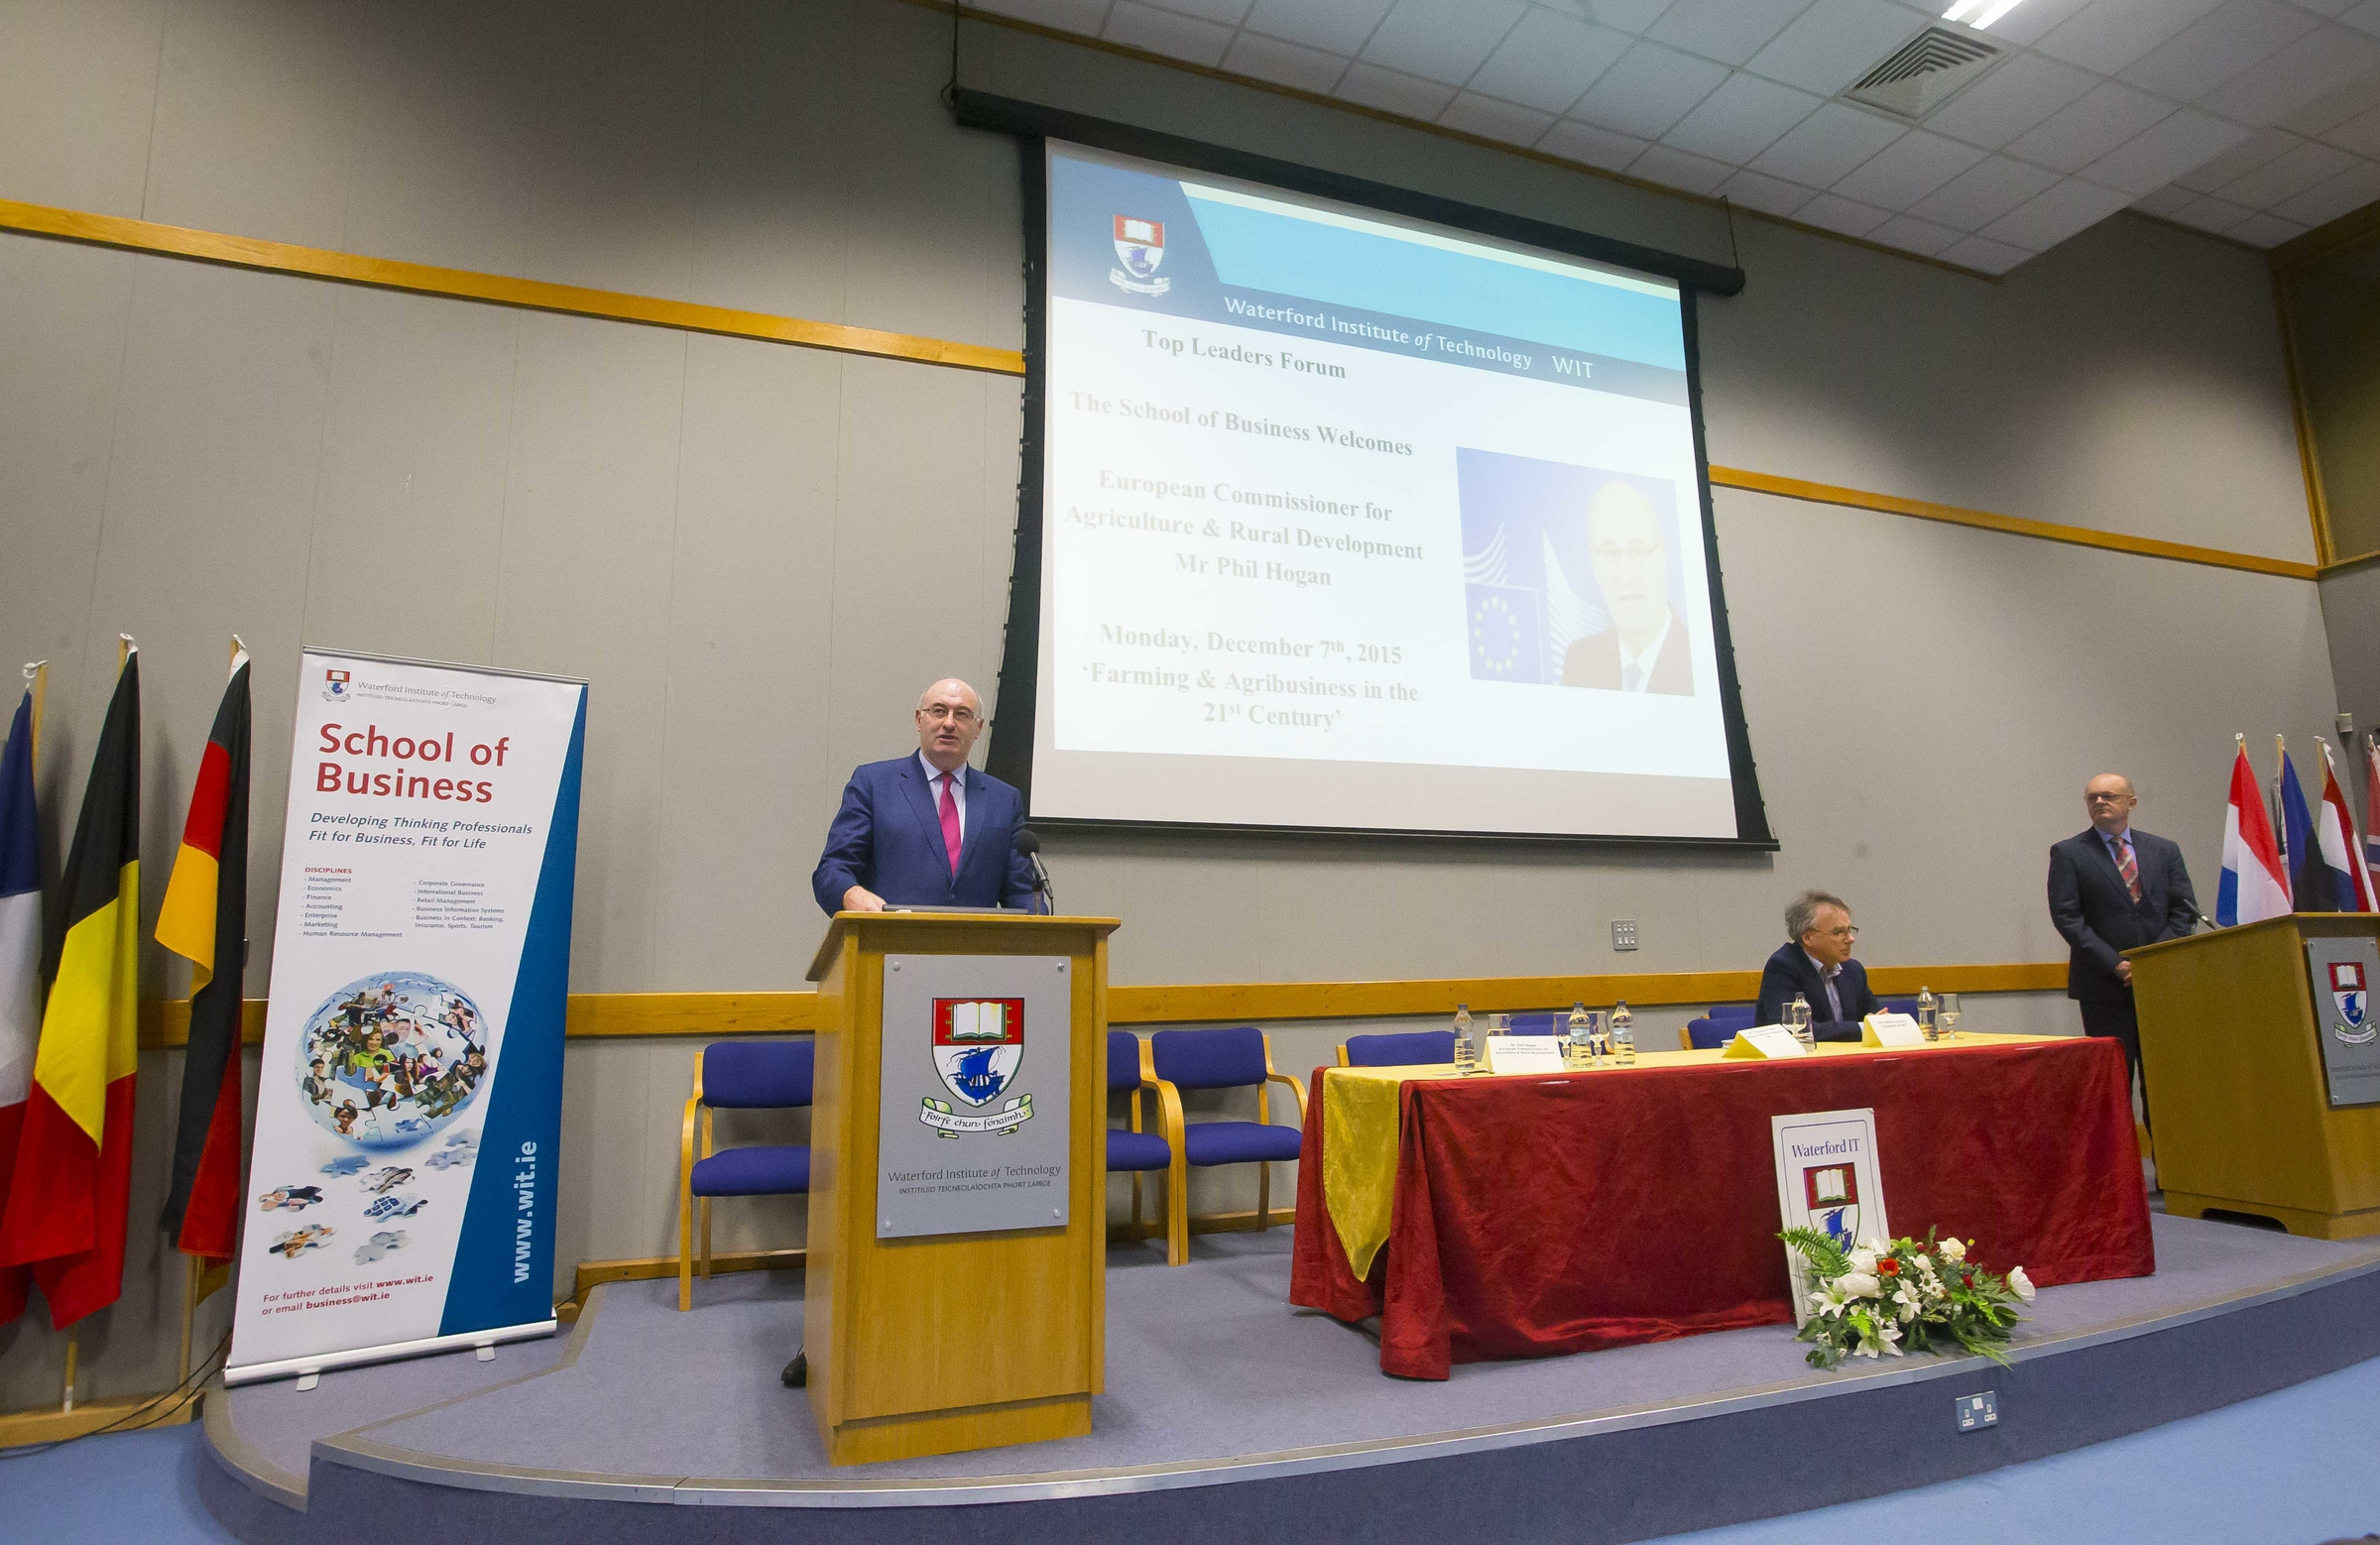 Pictured is EU Commissioner Phil Hogan addressing students from the School of Business